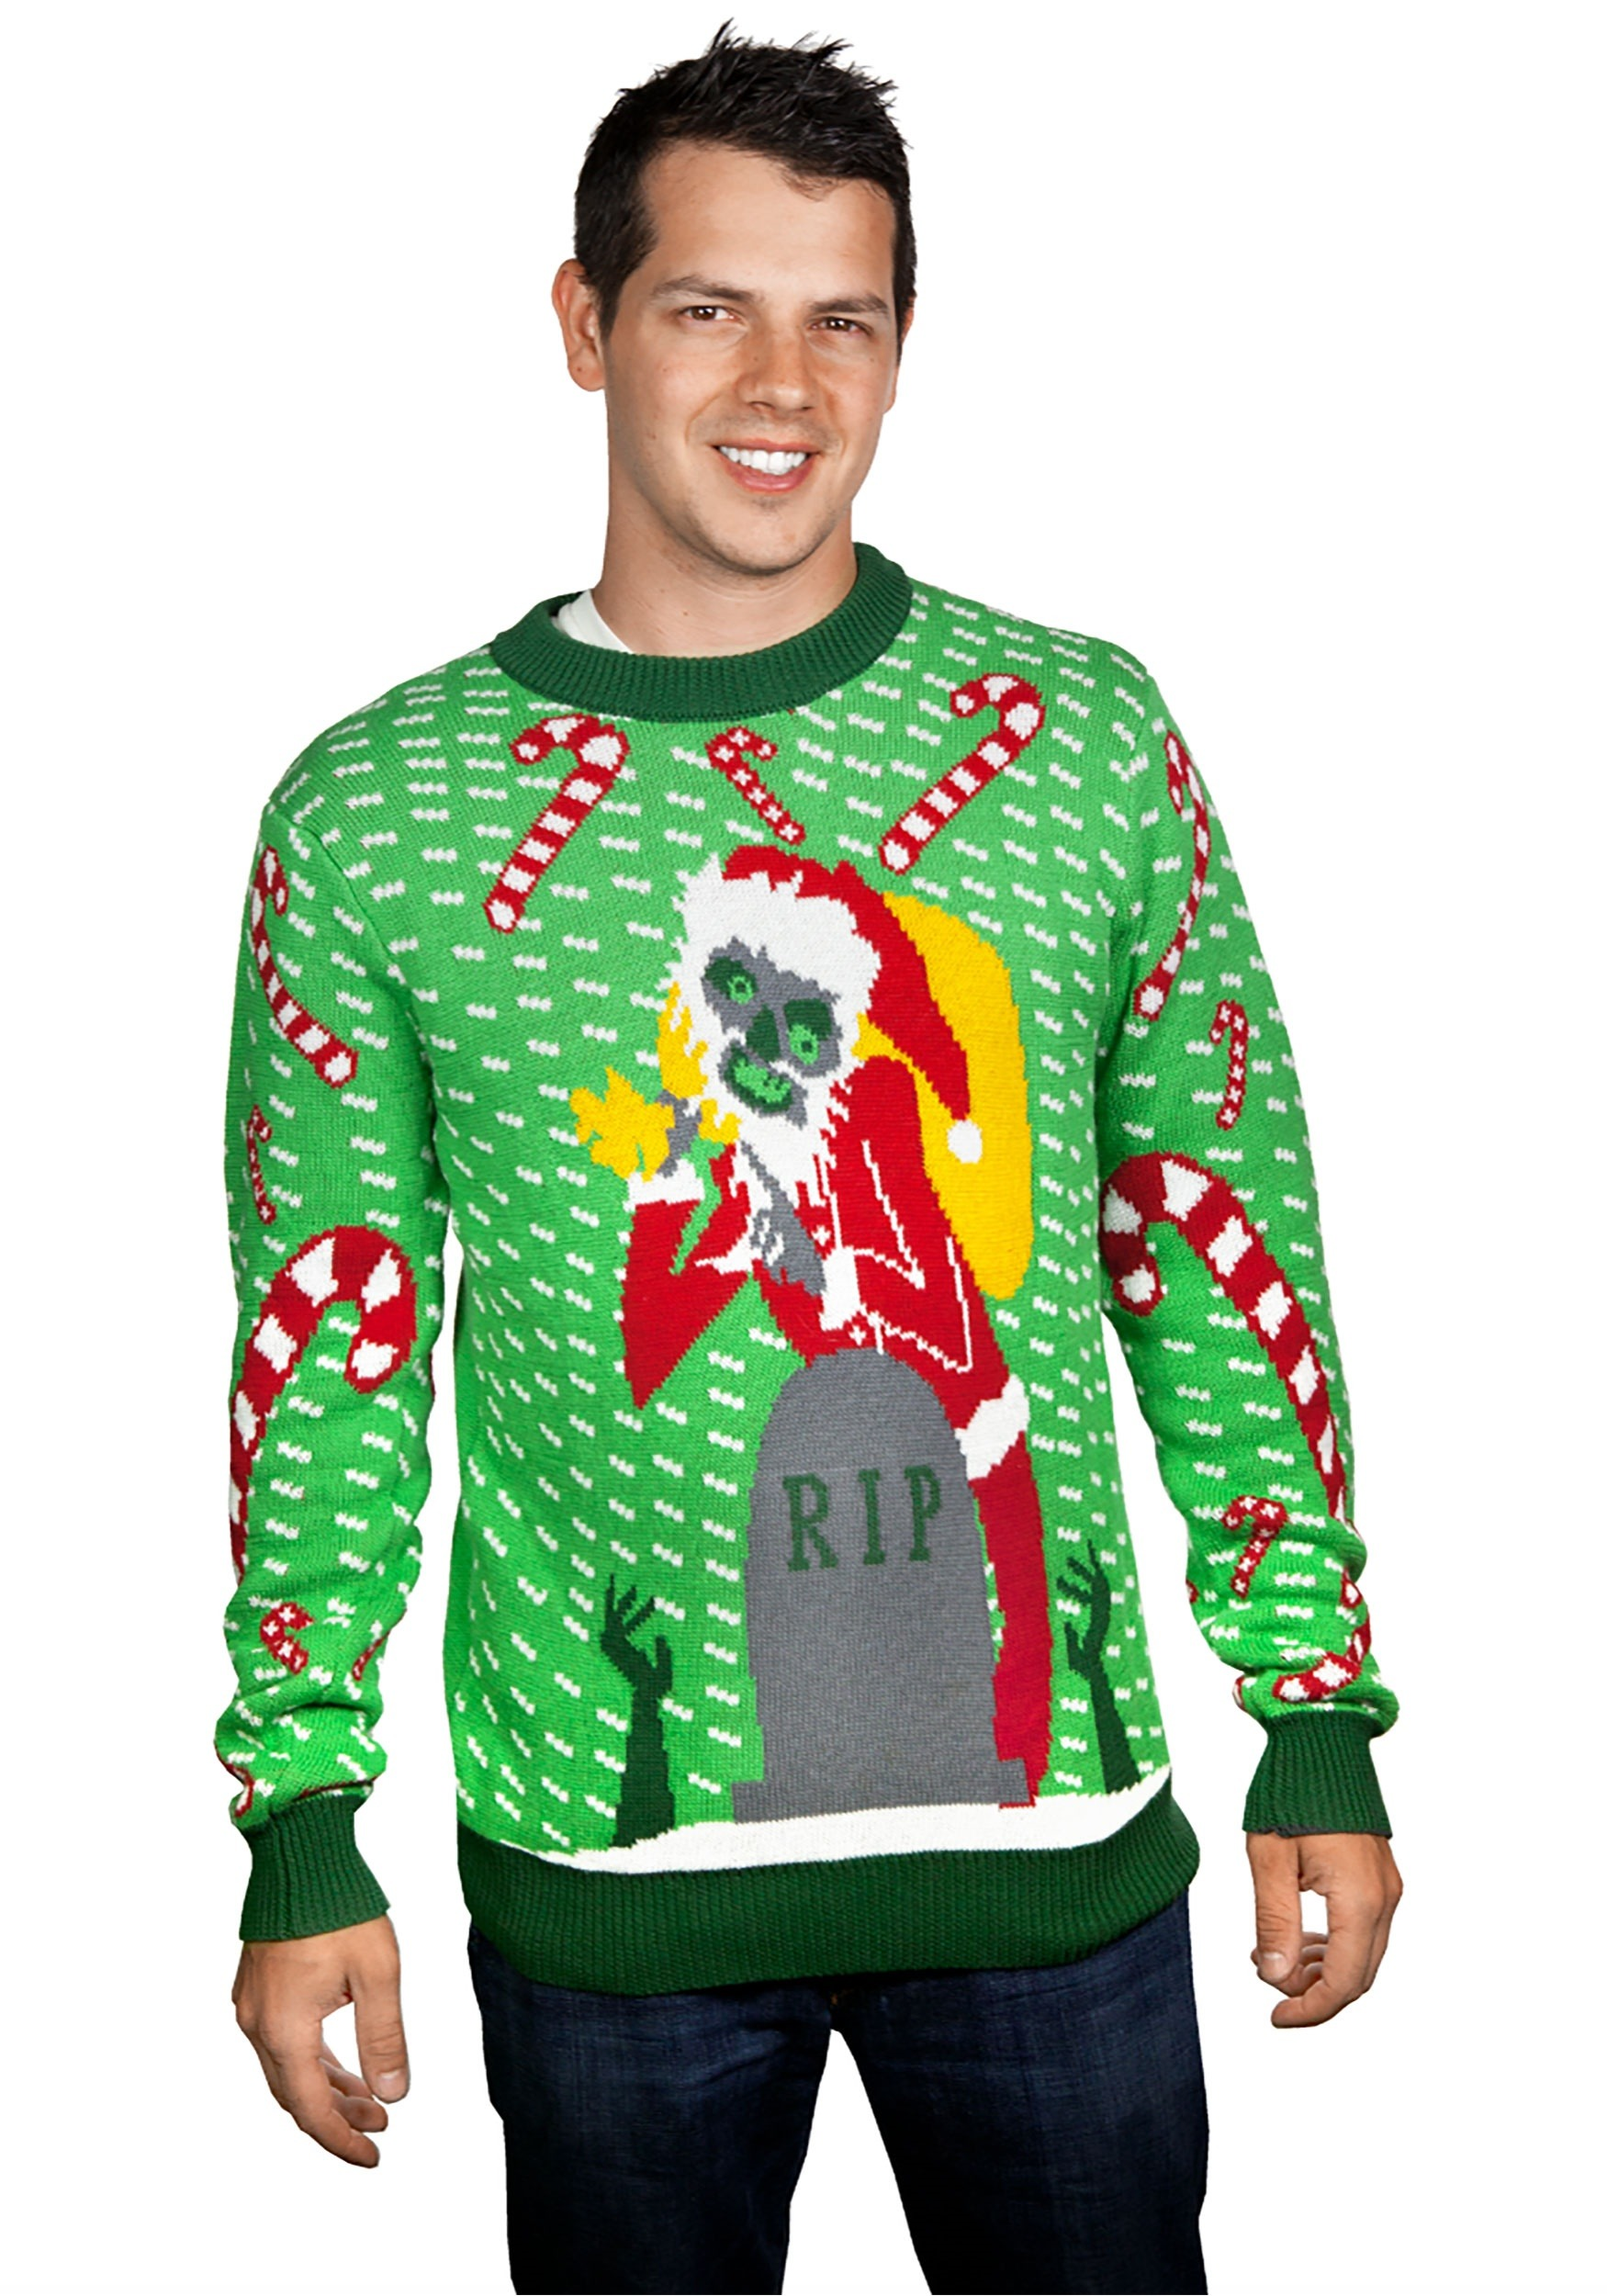 The Zombie Santa Ugly Christmas Sweater